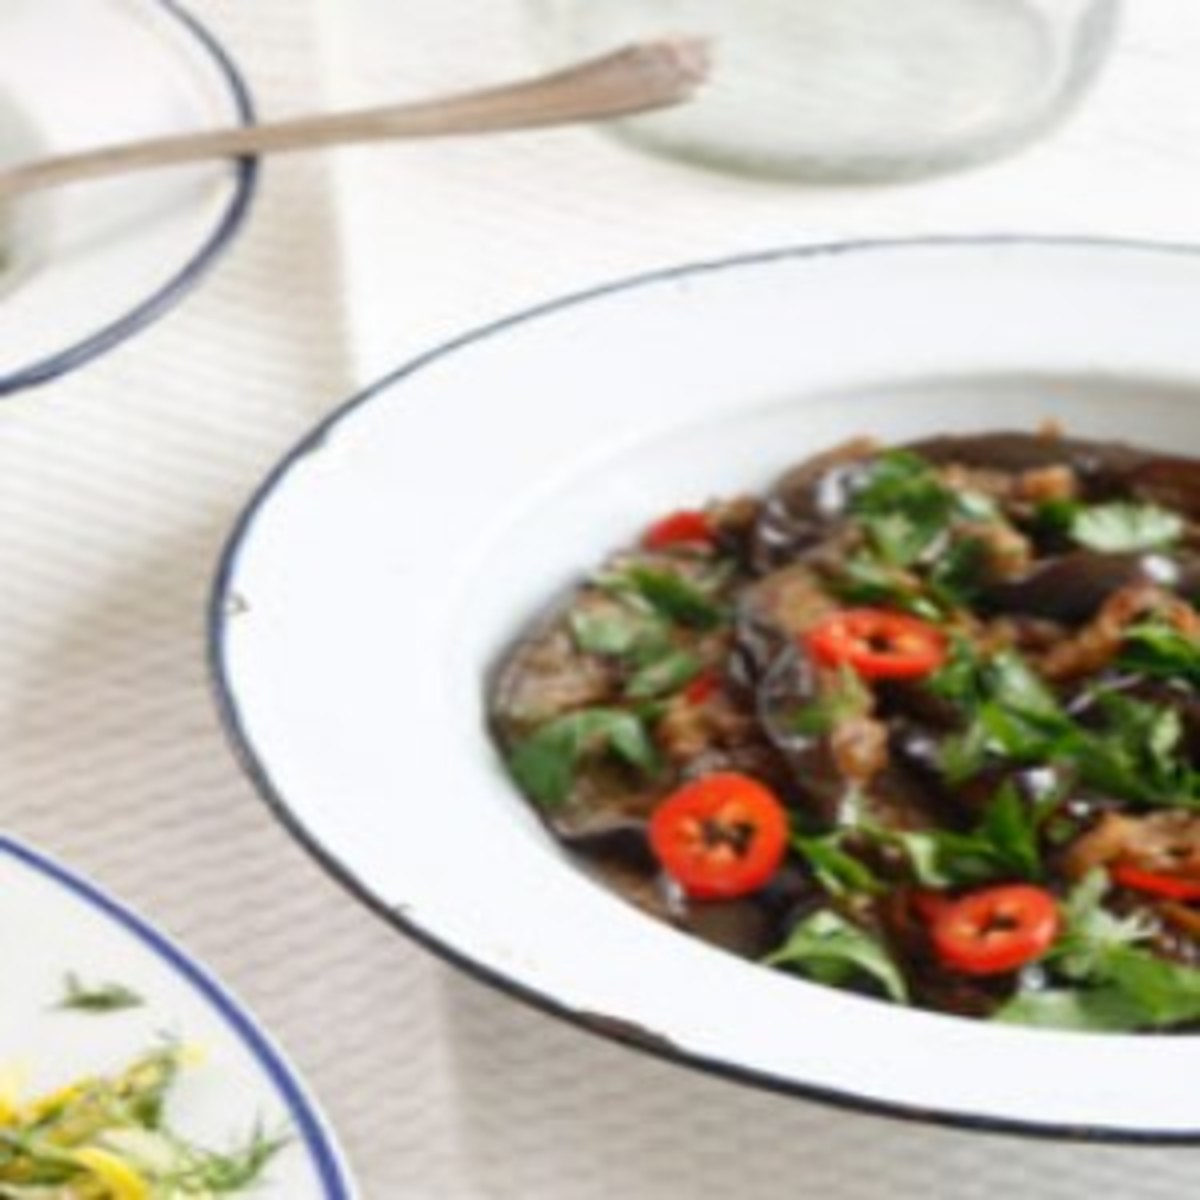 eggplant maple and soy sauce salad